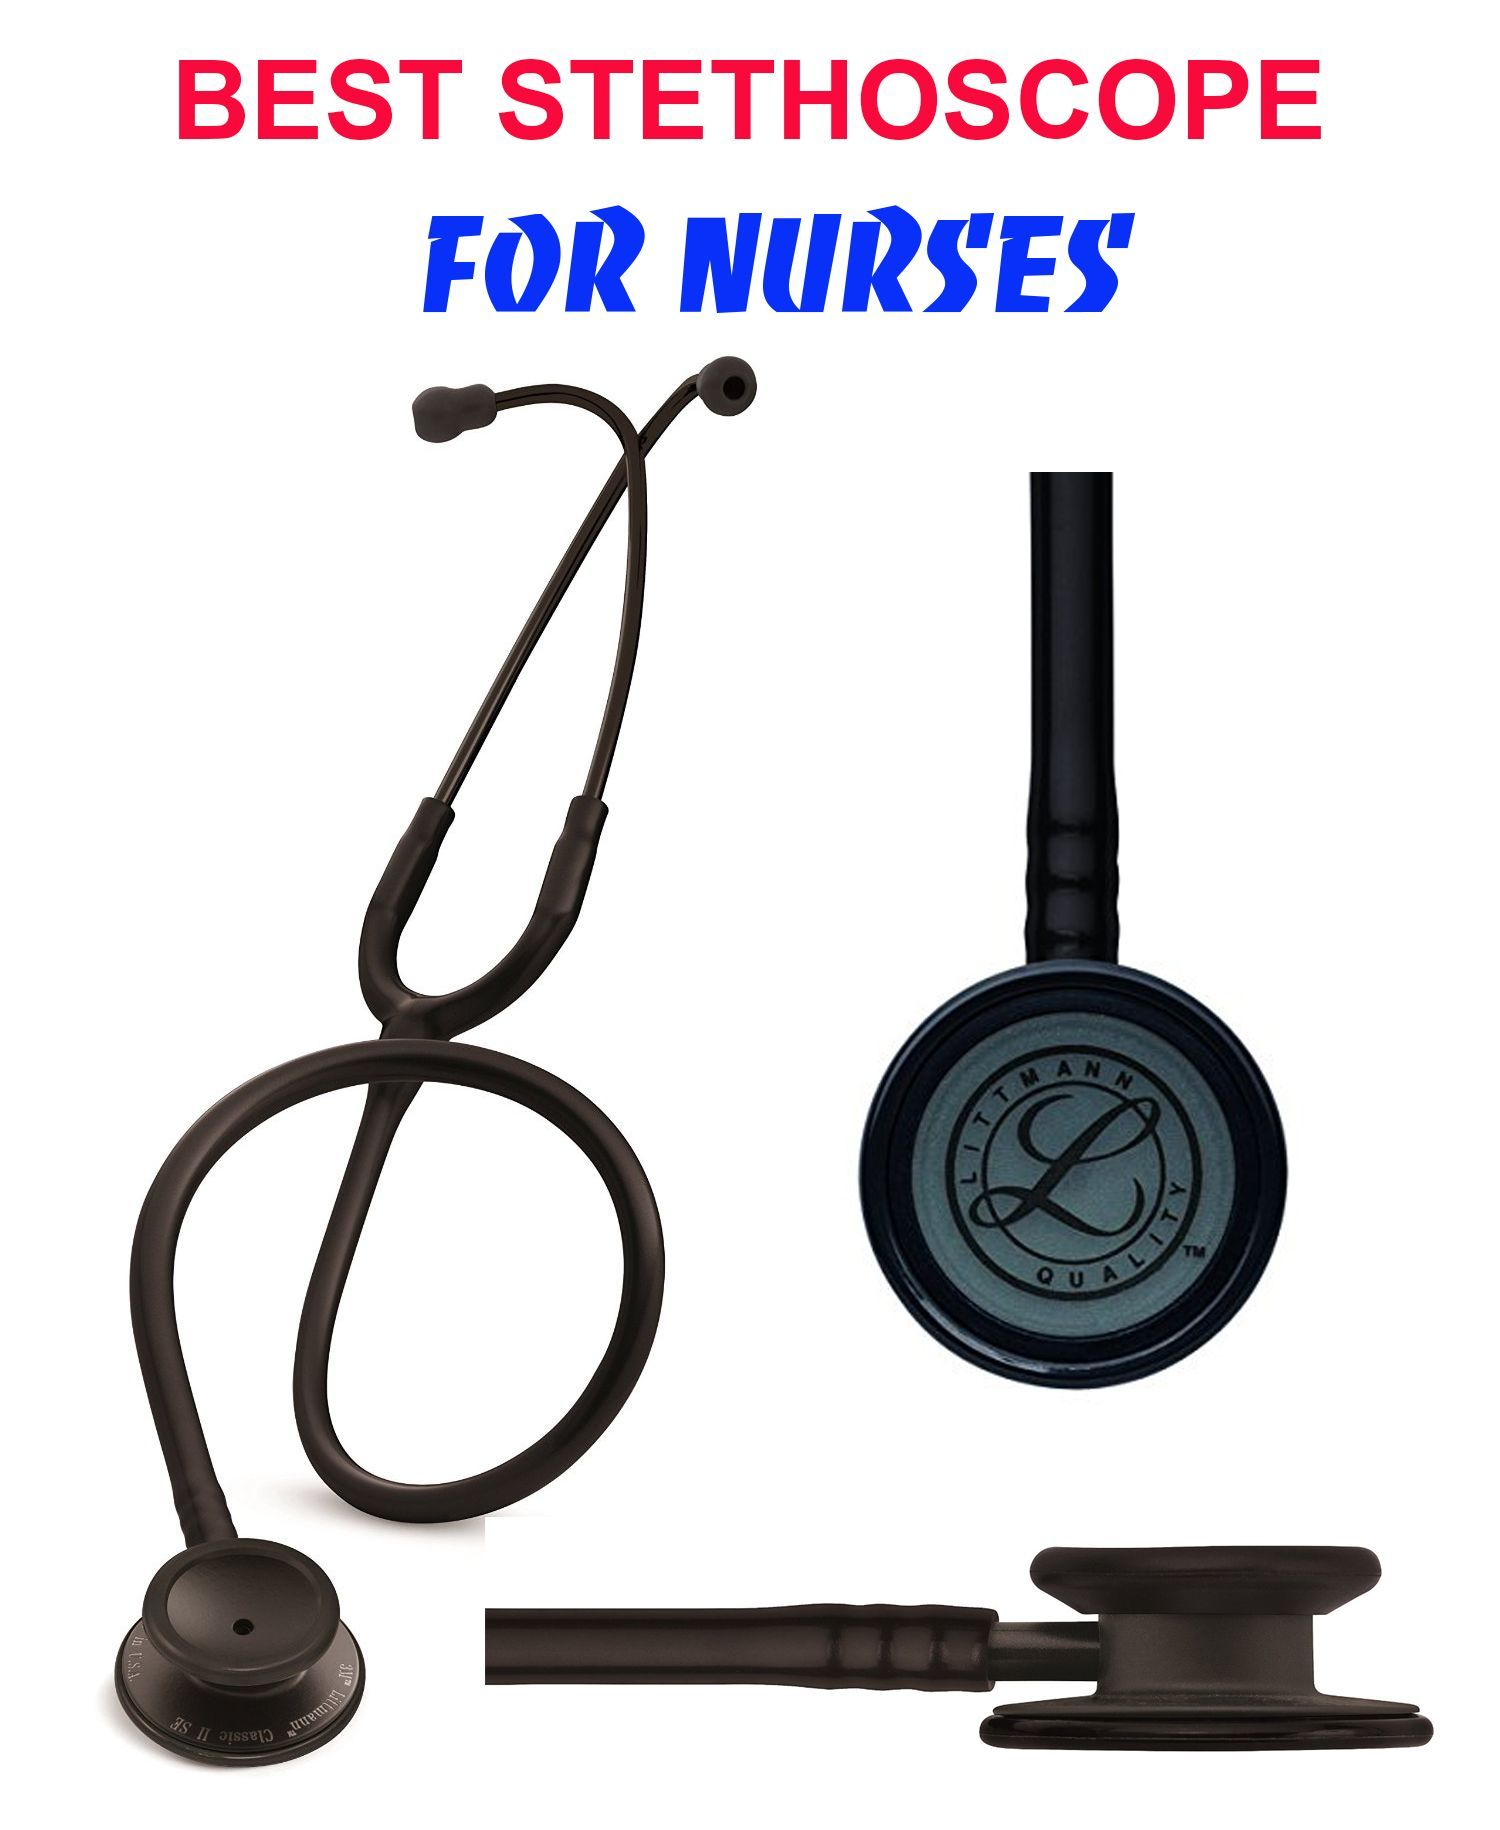 Best Stethoscope For Nursing Students 2020 best stethoscope for nursing student | Best Stethoscope Reviews